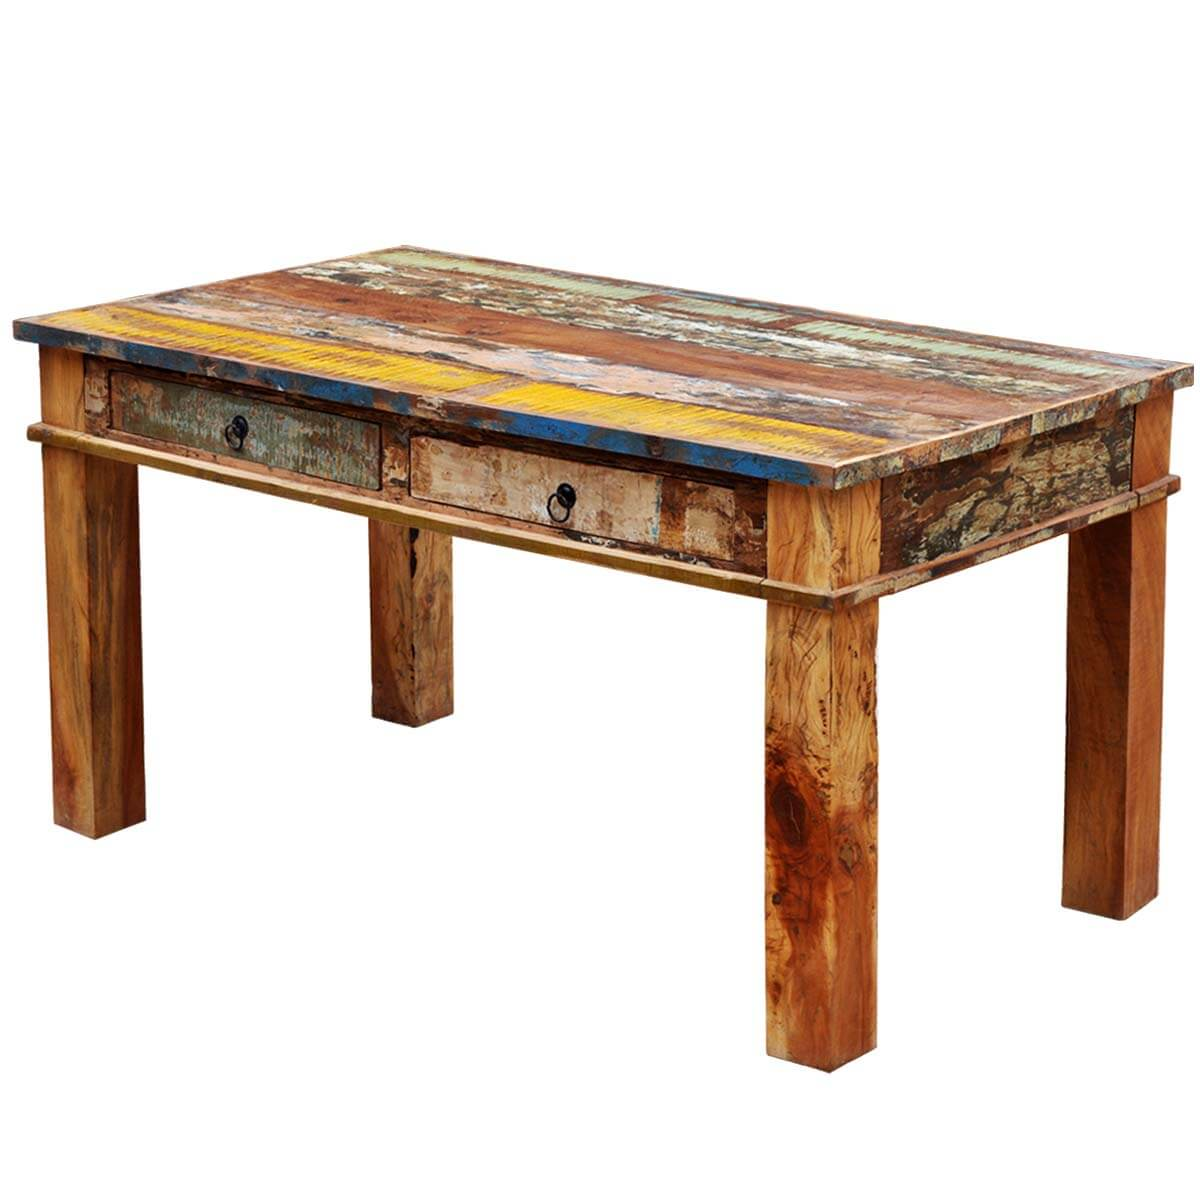 Wood Dining Room Tables: Unique Reclaimed Wood Rustic Dining Room Table Furniture